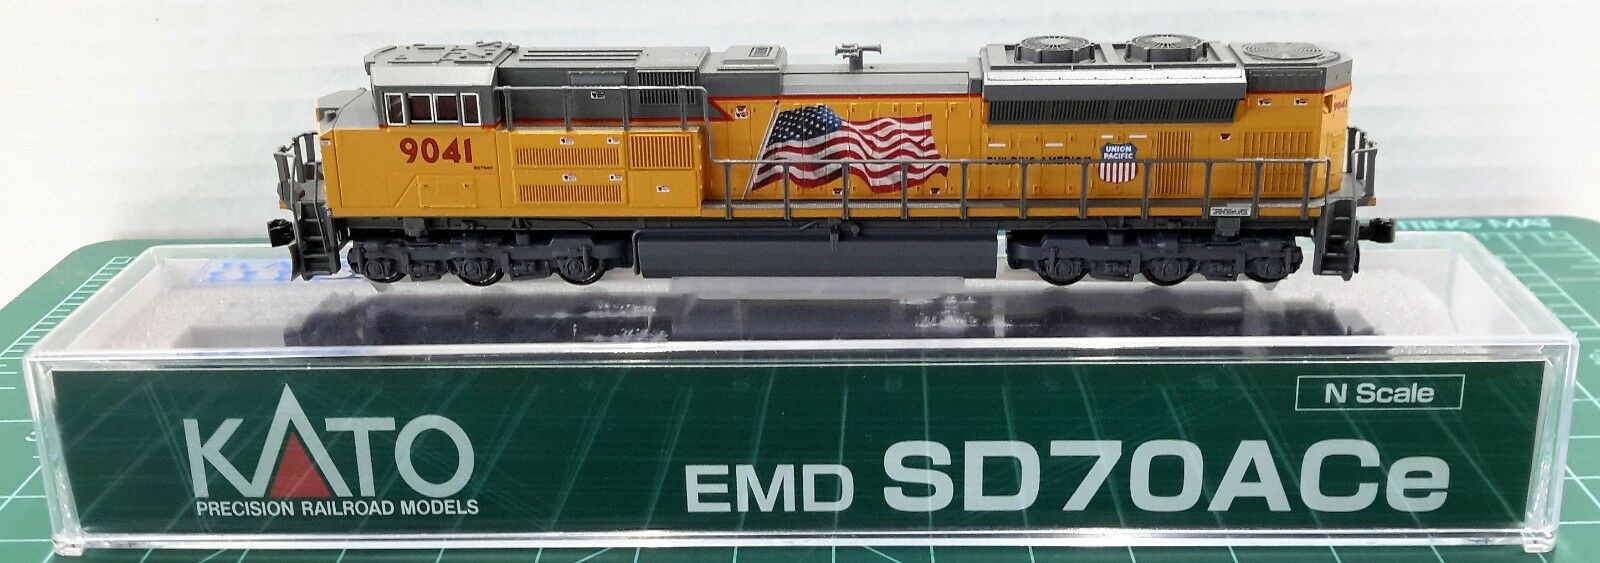 Escala N Kato SD70ACe Union Pacific 'Road  9041 Dcc Listo artículo  176-8520